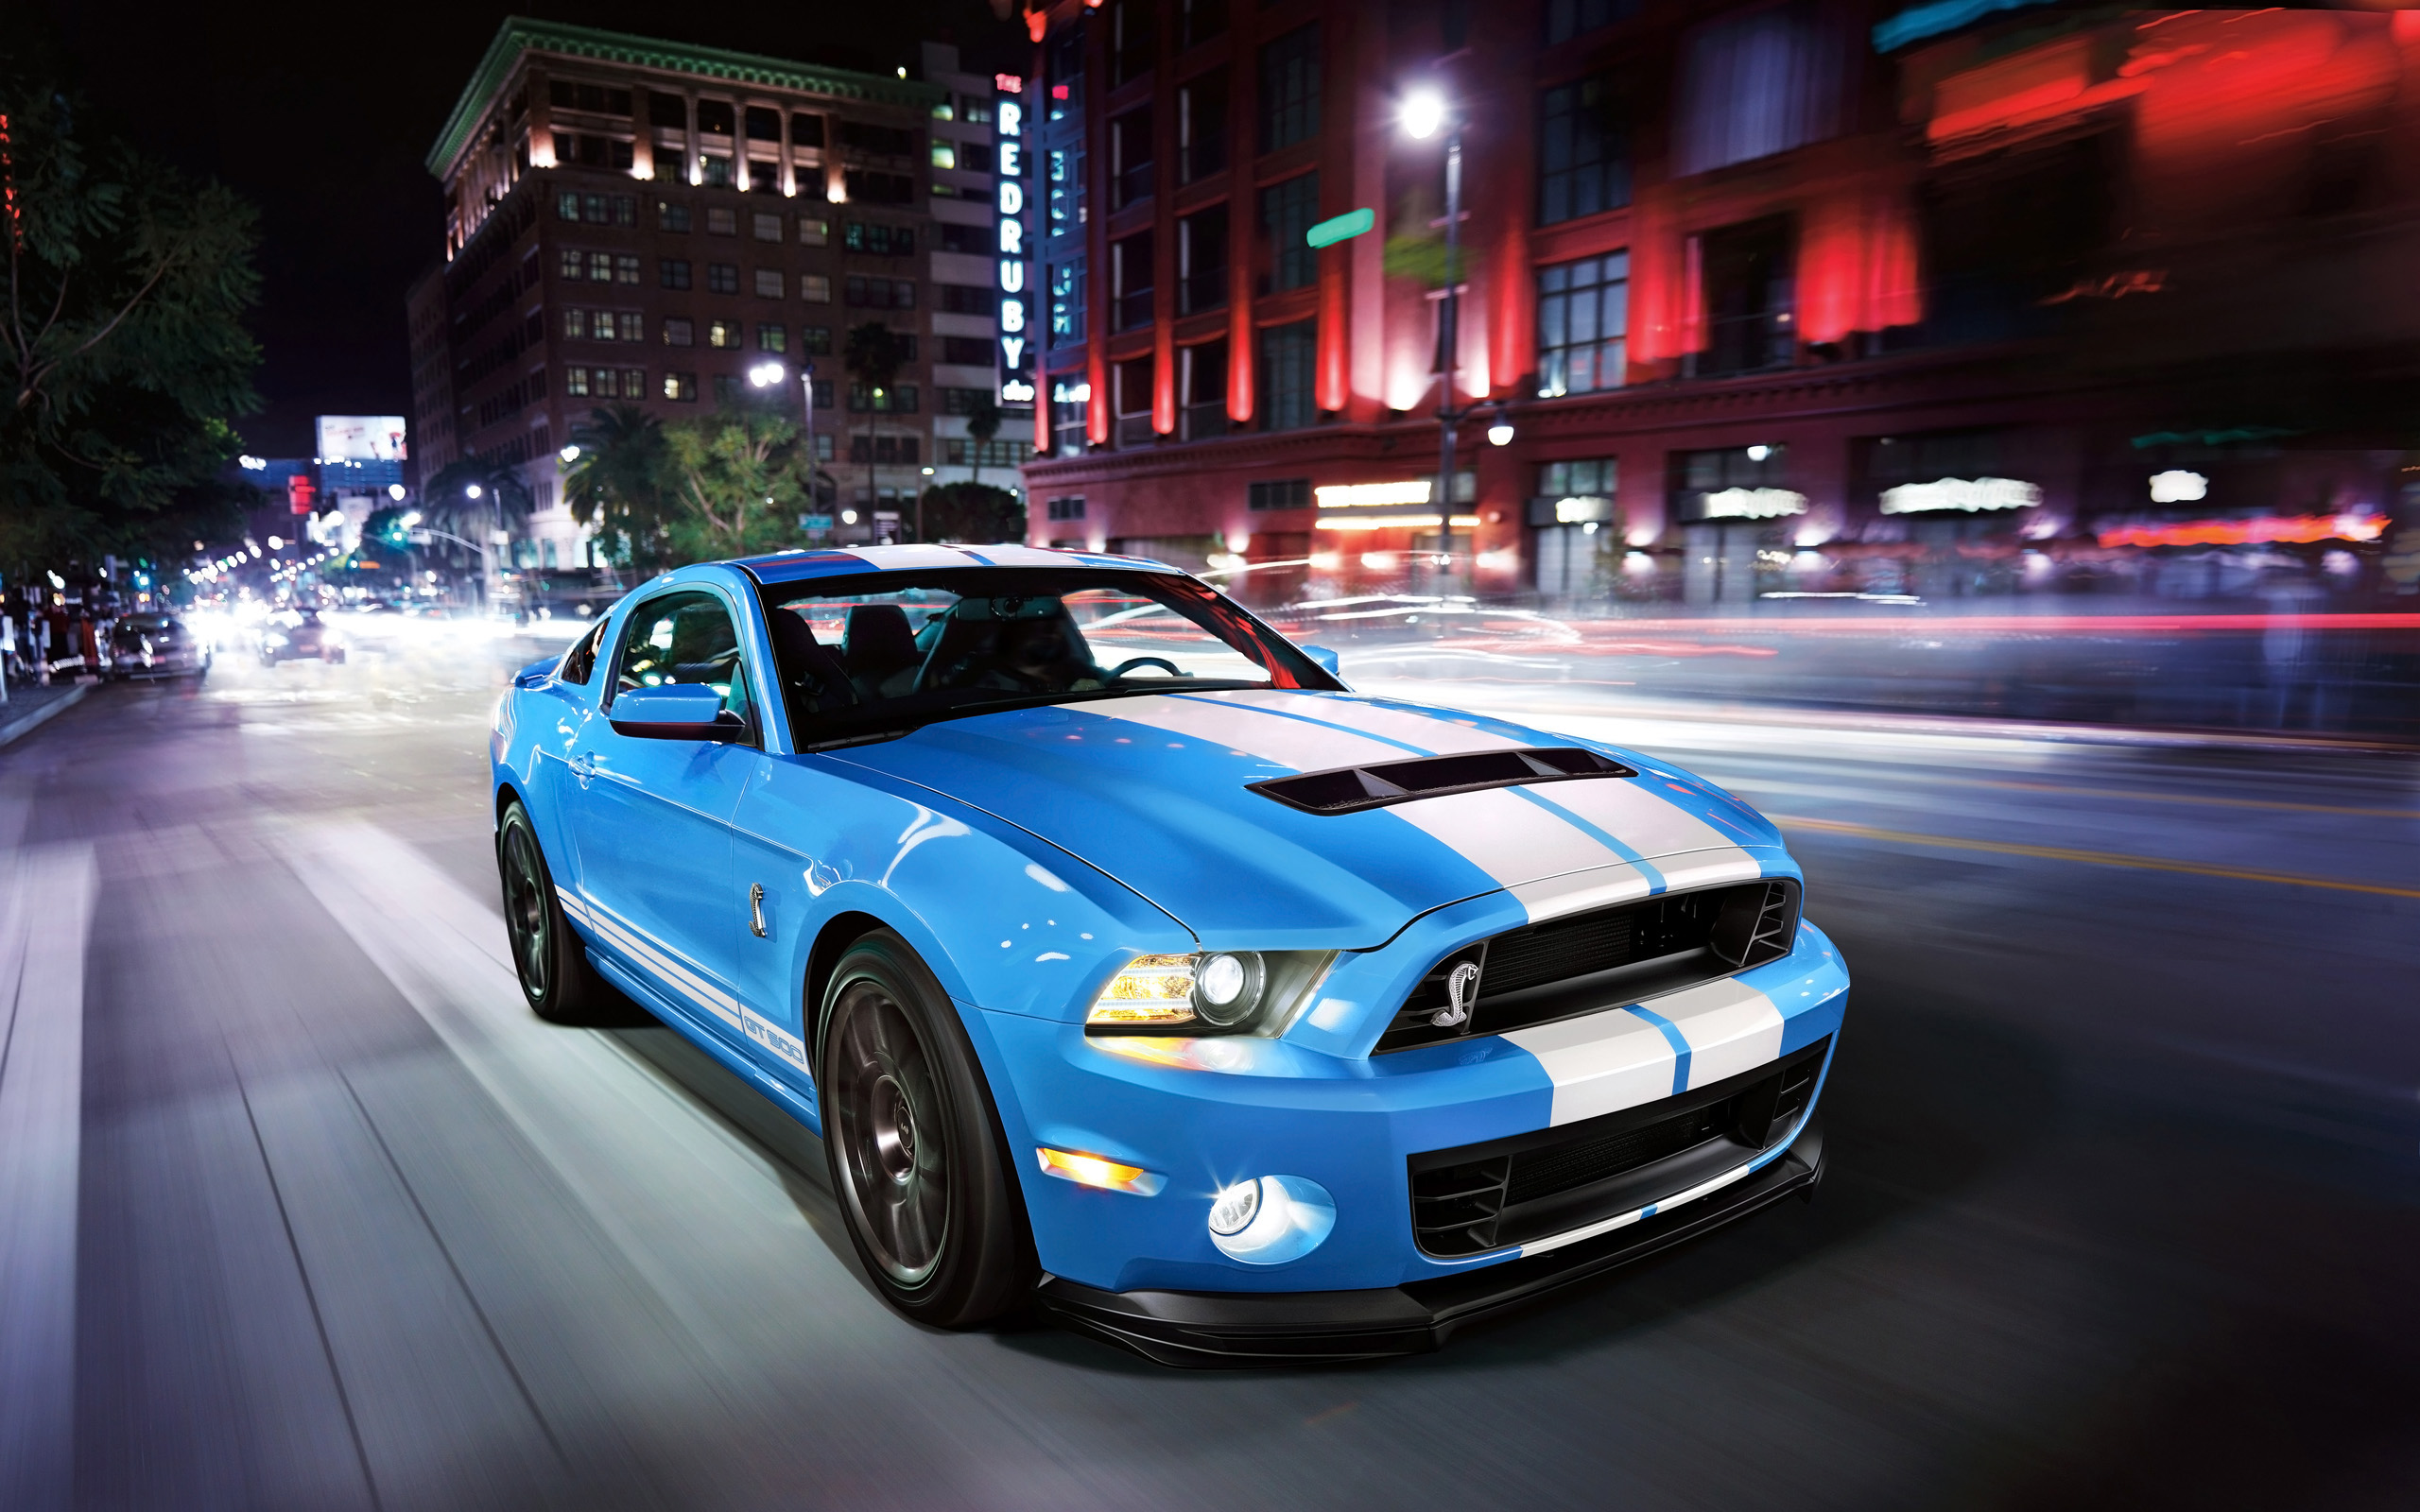 Ford Shelby GT500 2014 Wallpapers HD Wallpapers 2560x1600